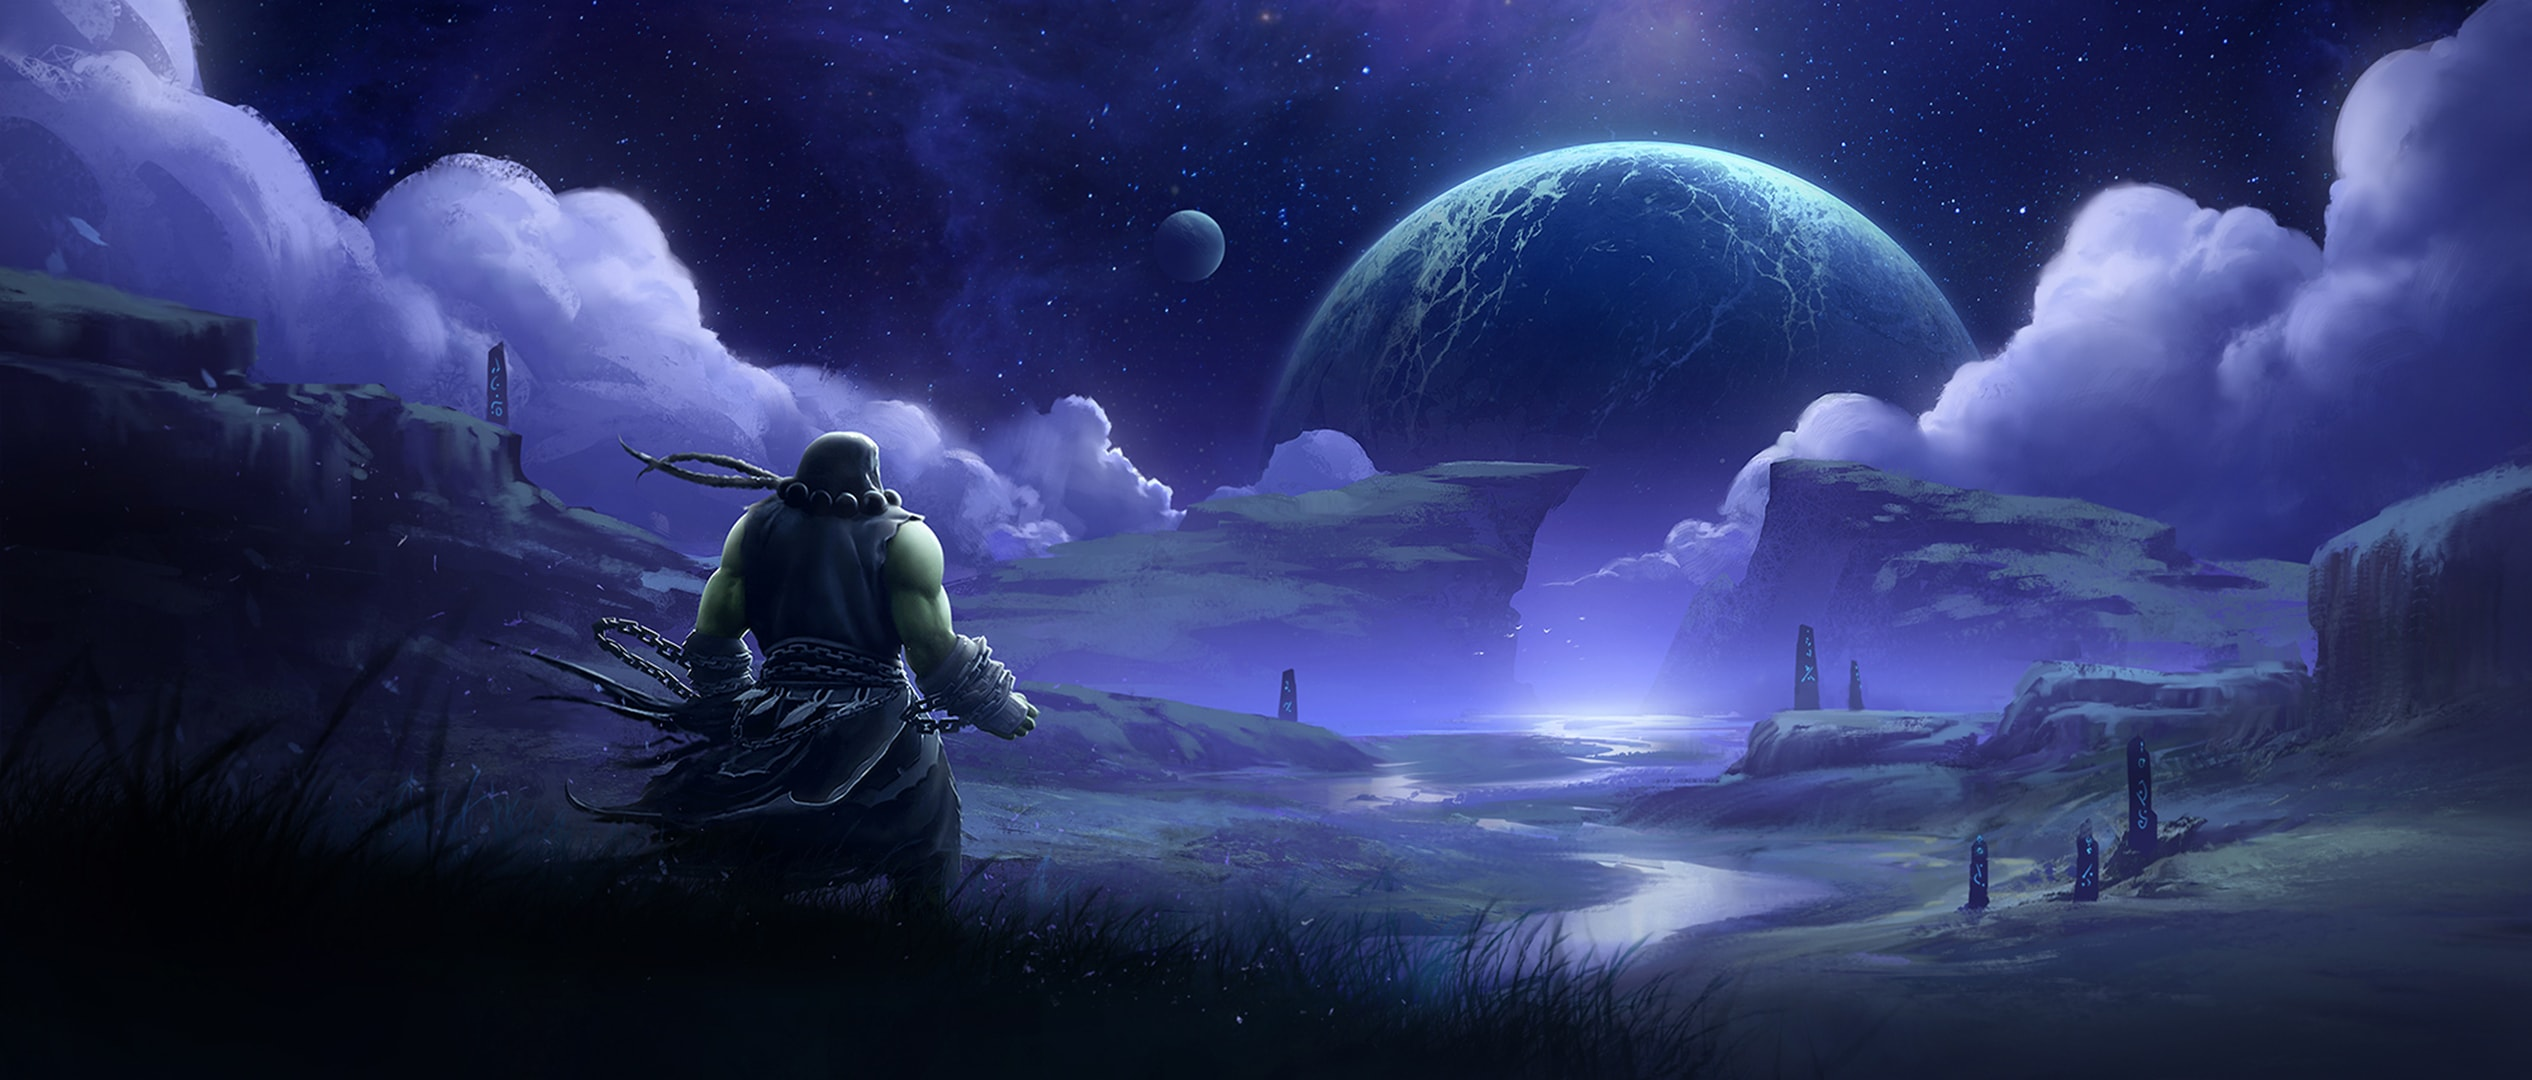 World Of Warcraft HD Desktop Wallpapers for